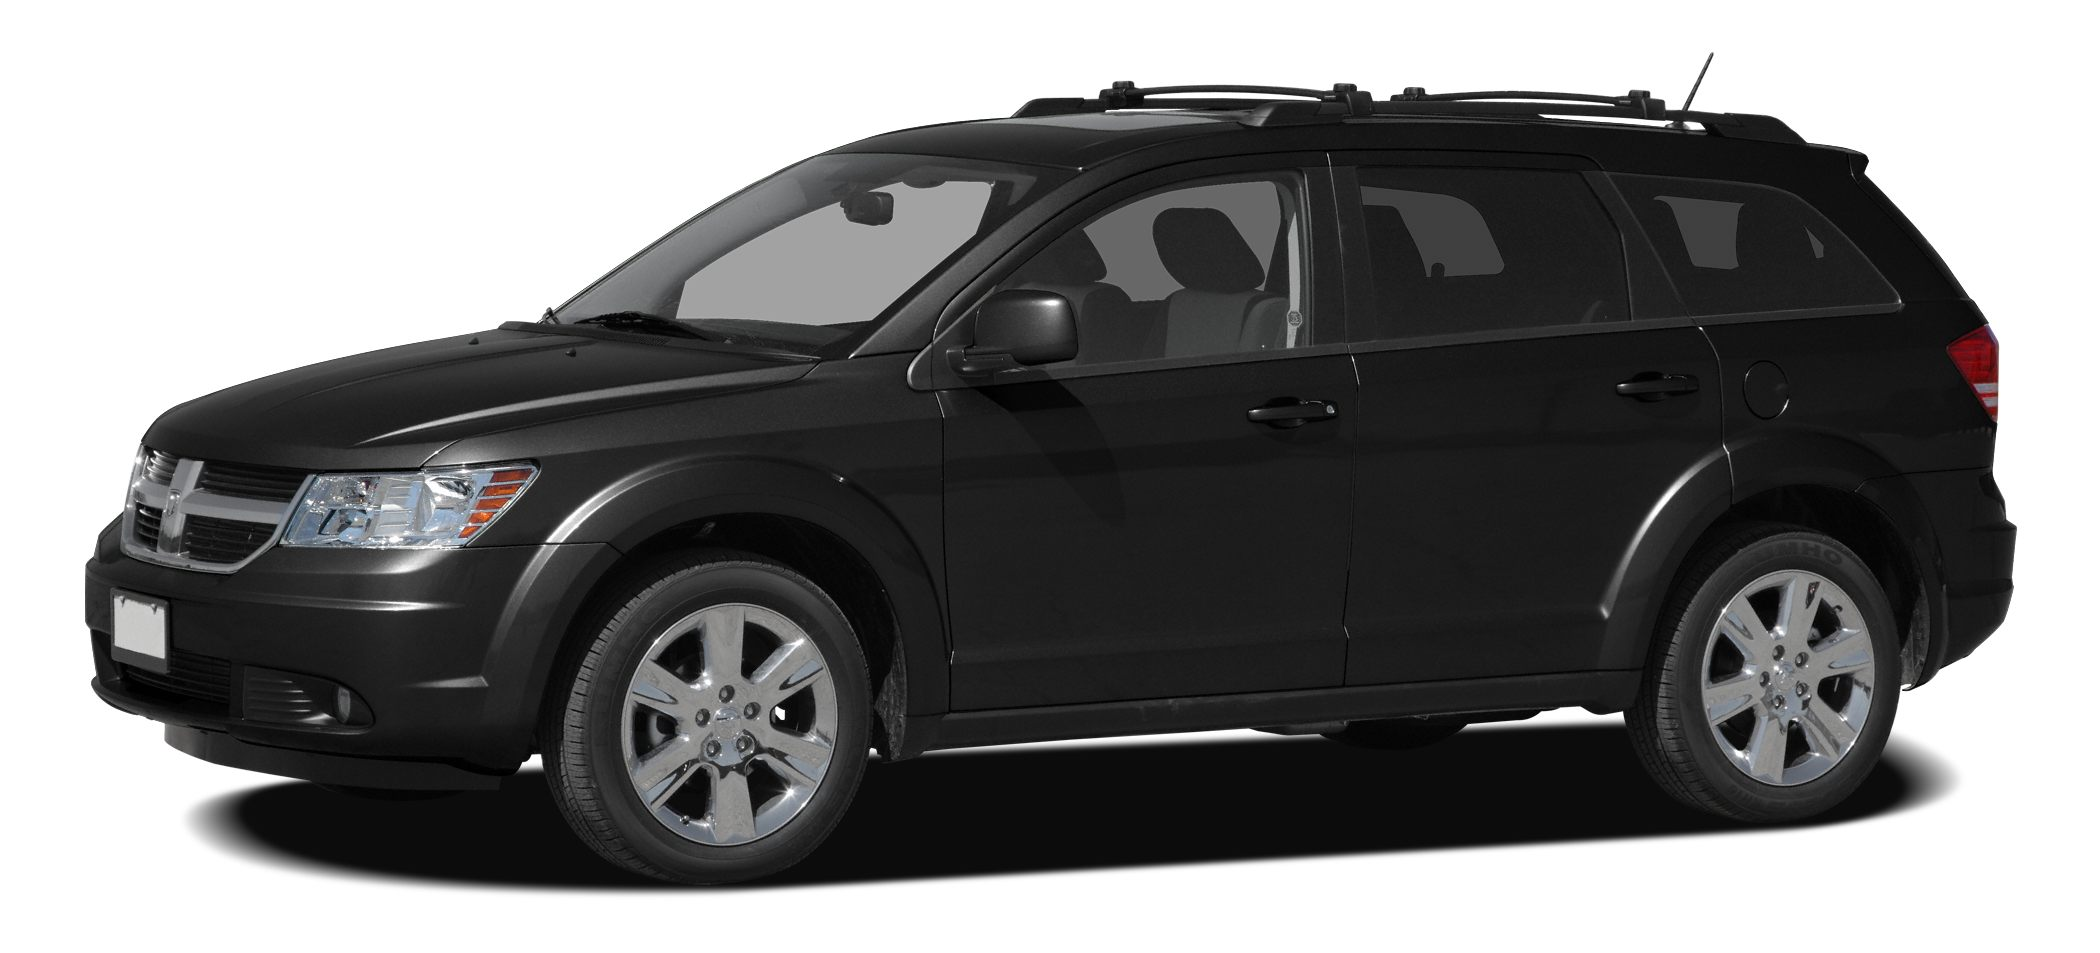 2010 Dodge Journey SXT  WHEN IT COMES TO EXCELLENCE IN USED CAR SALES YOU KNOW YOURE AT STAR